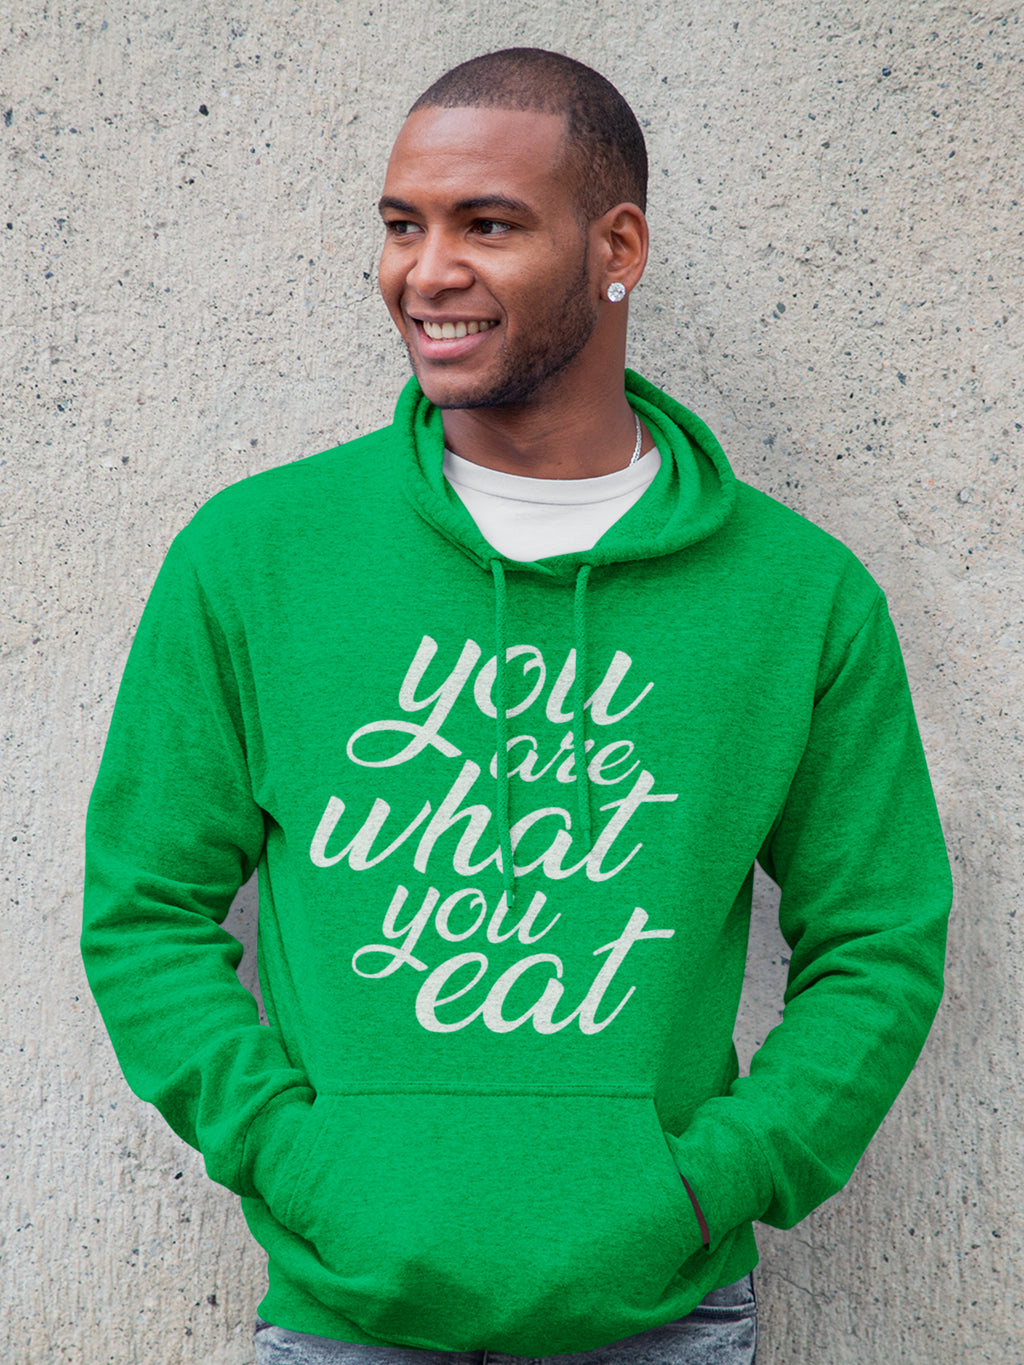 You are what you eat - Vegan hoodie